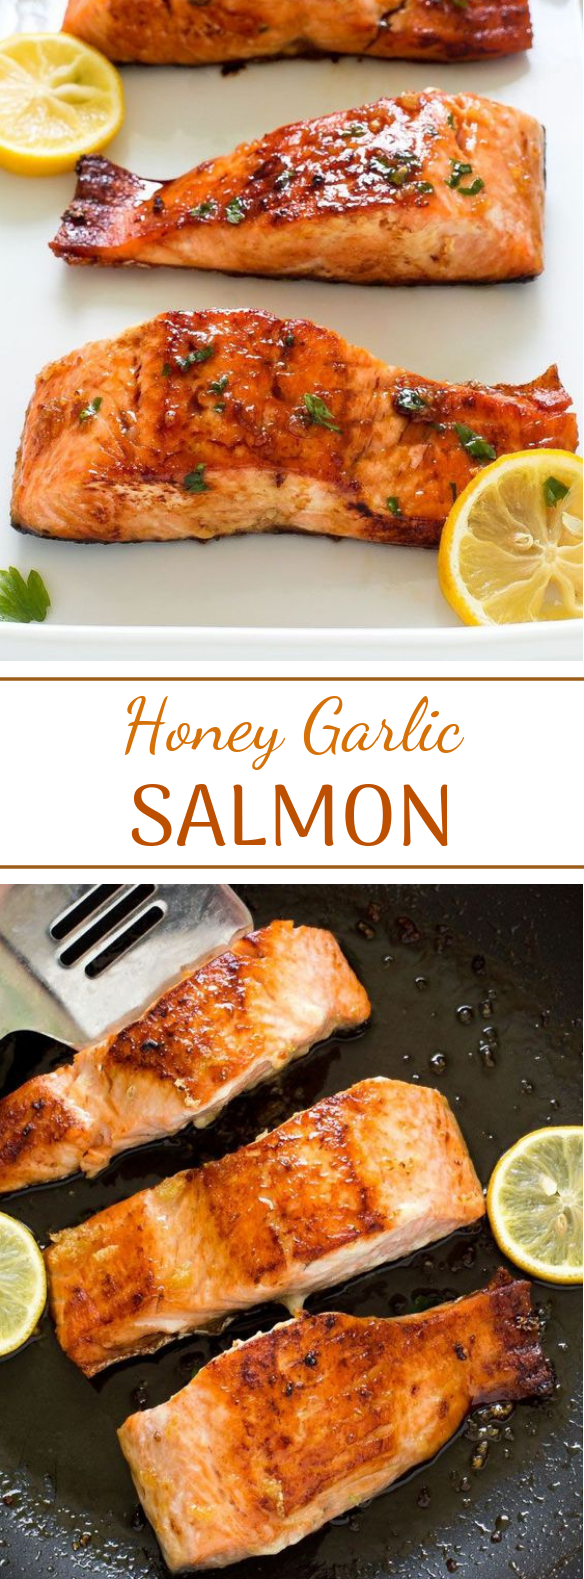 Honey Garlic Salmon #fish #familyrecipe